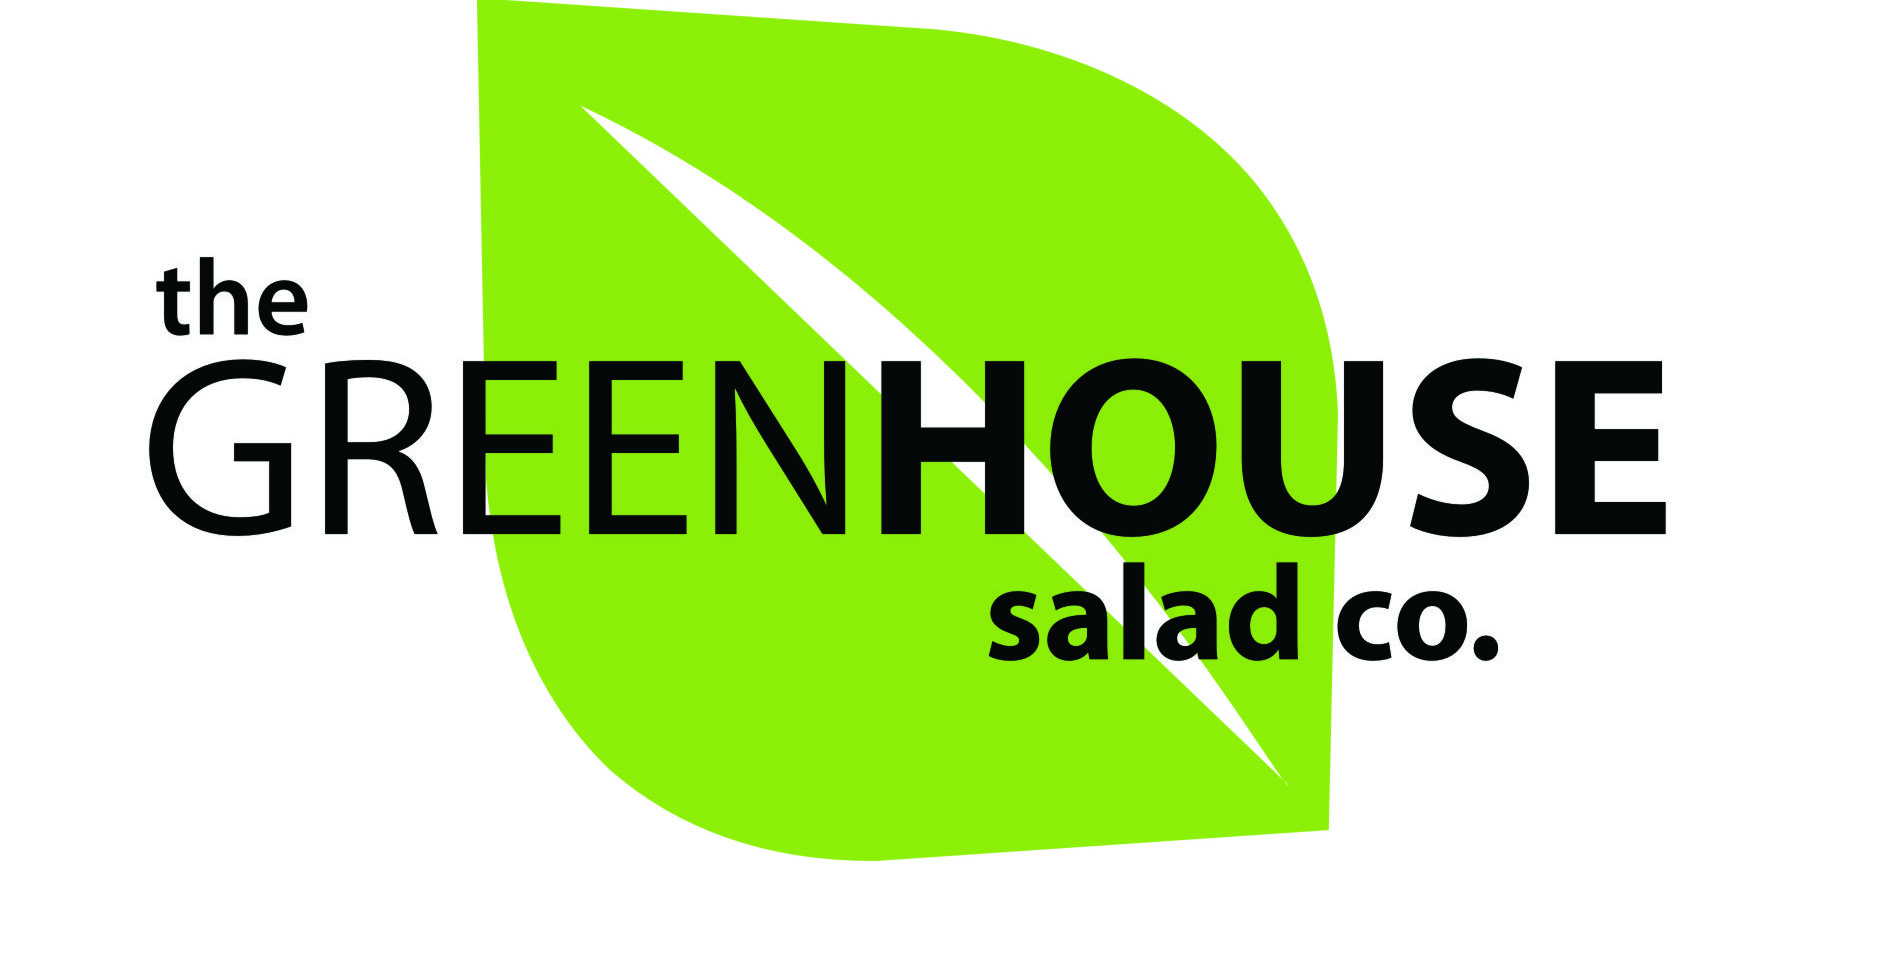 The GreenHouse Salad Co.